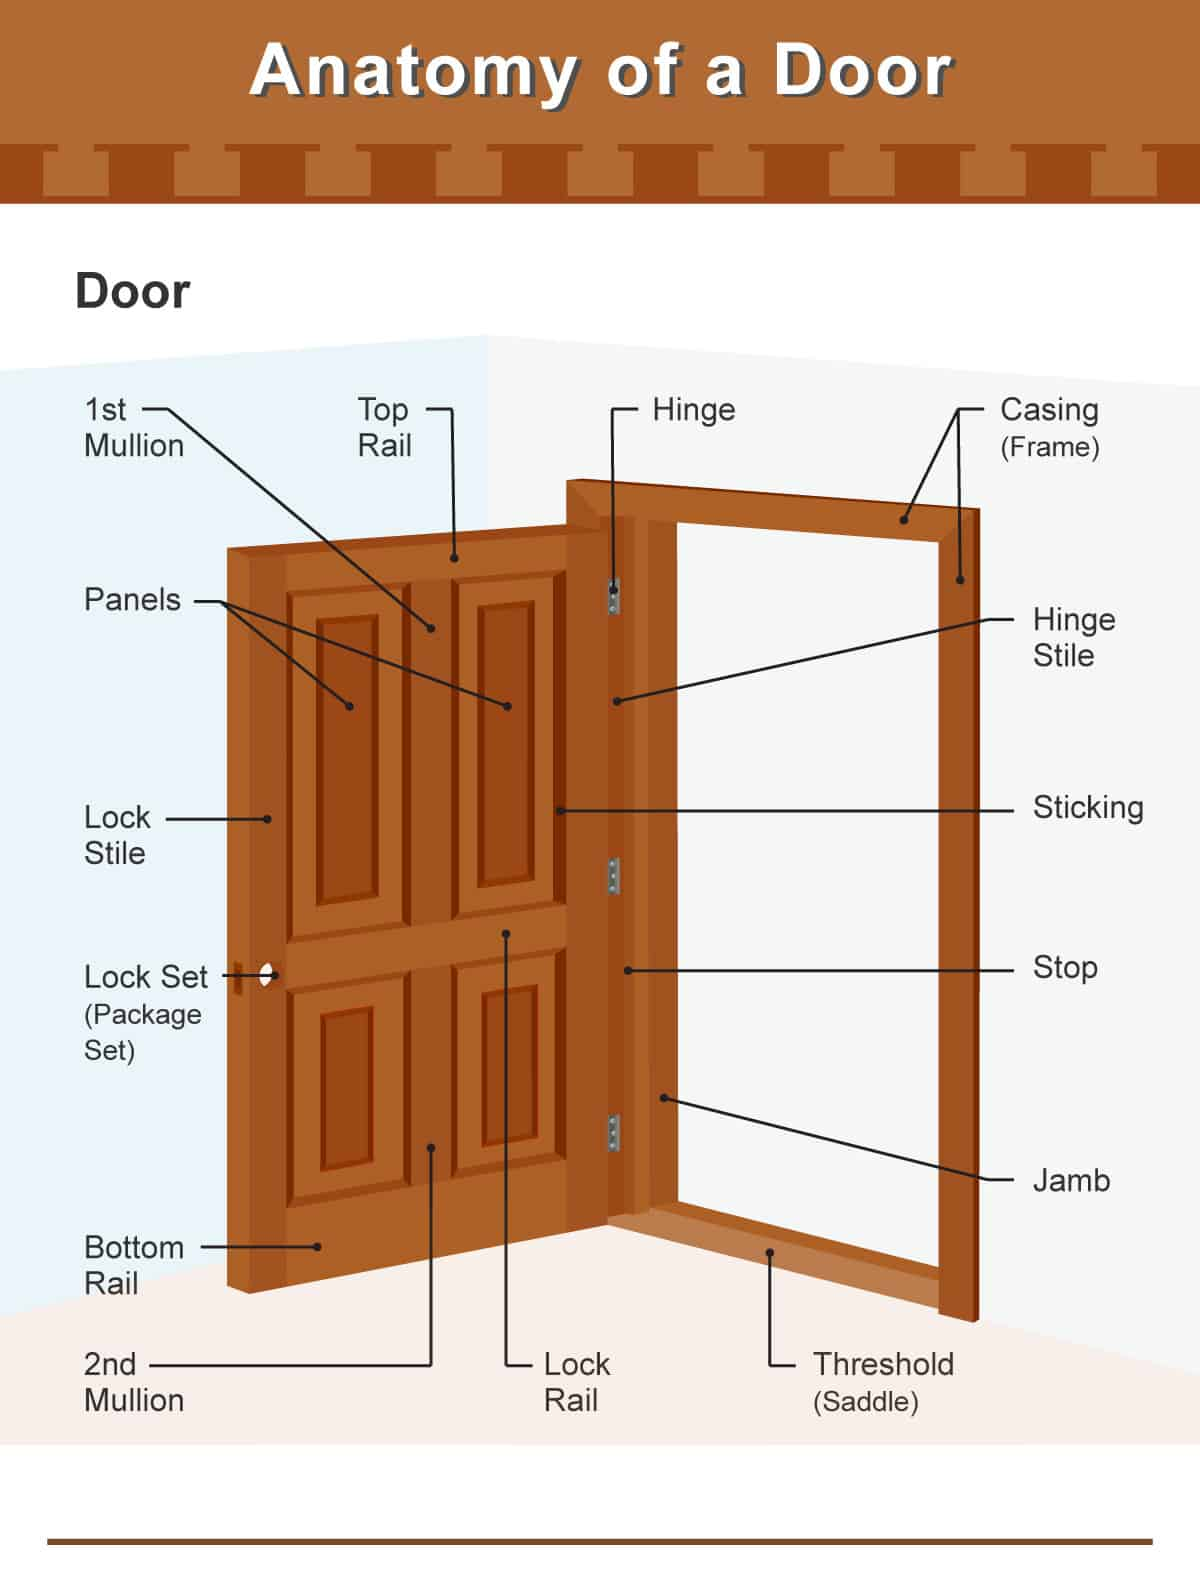 Diagram illustrating the different parts of a door and door frame